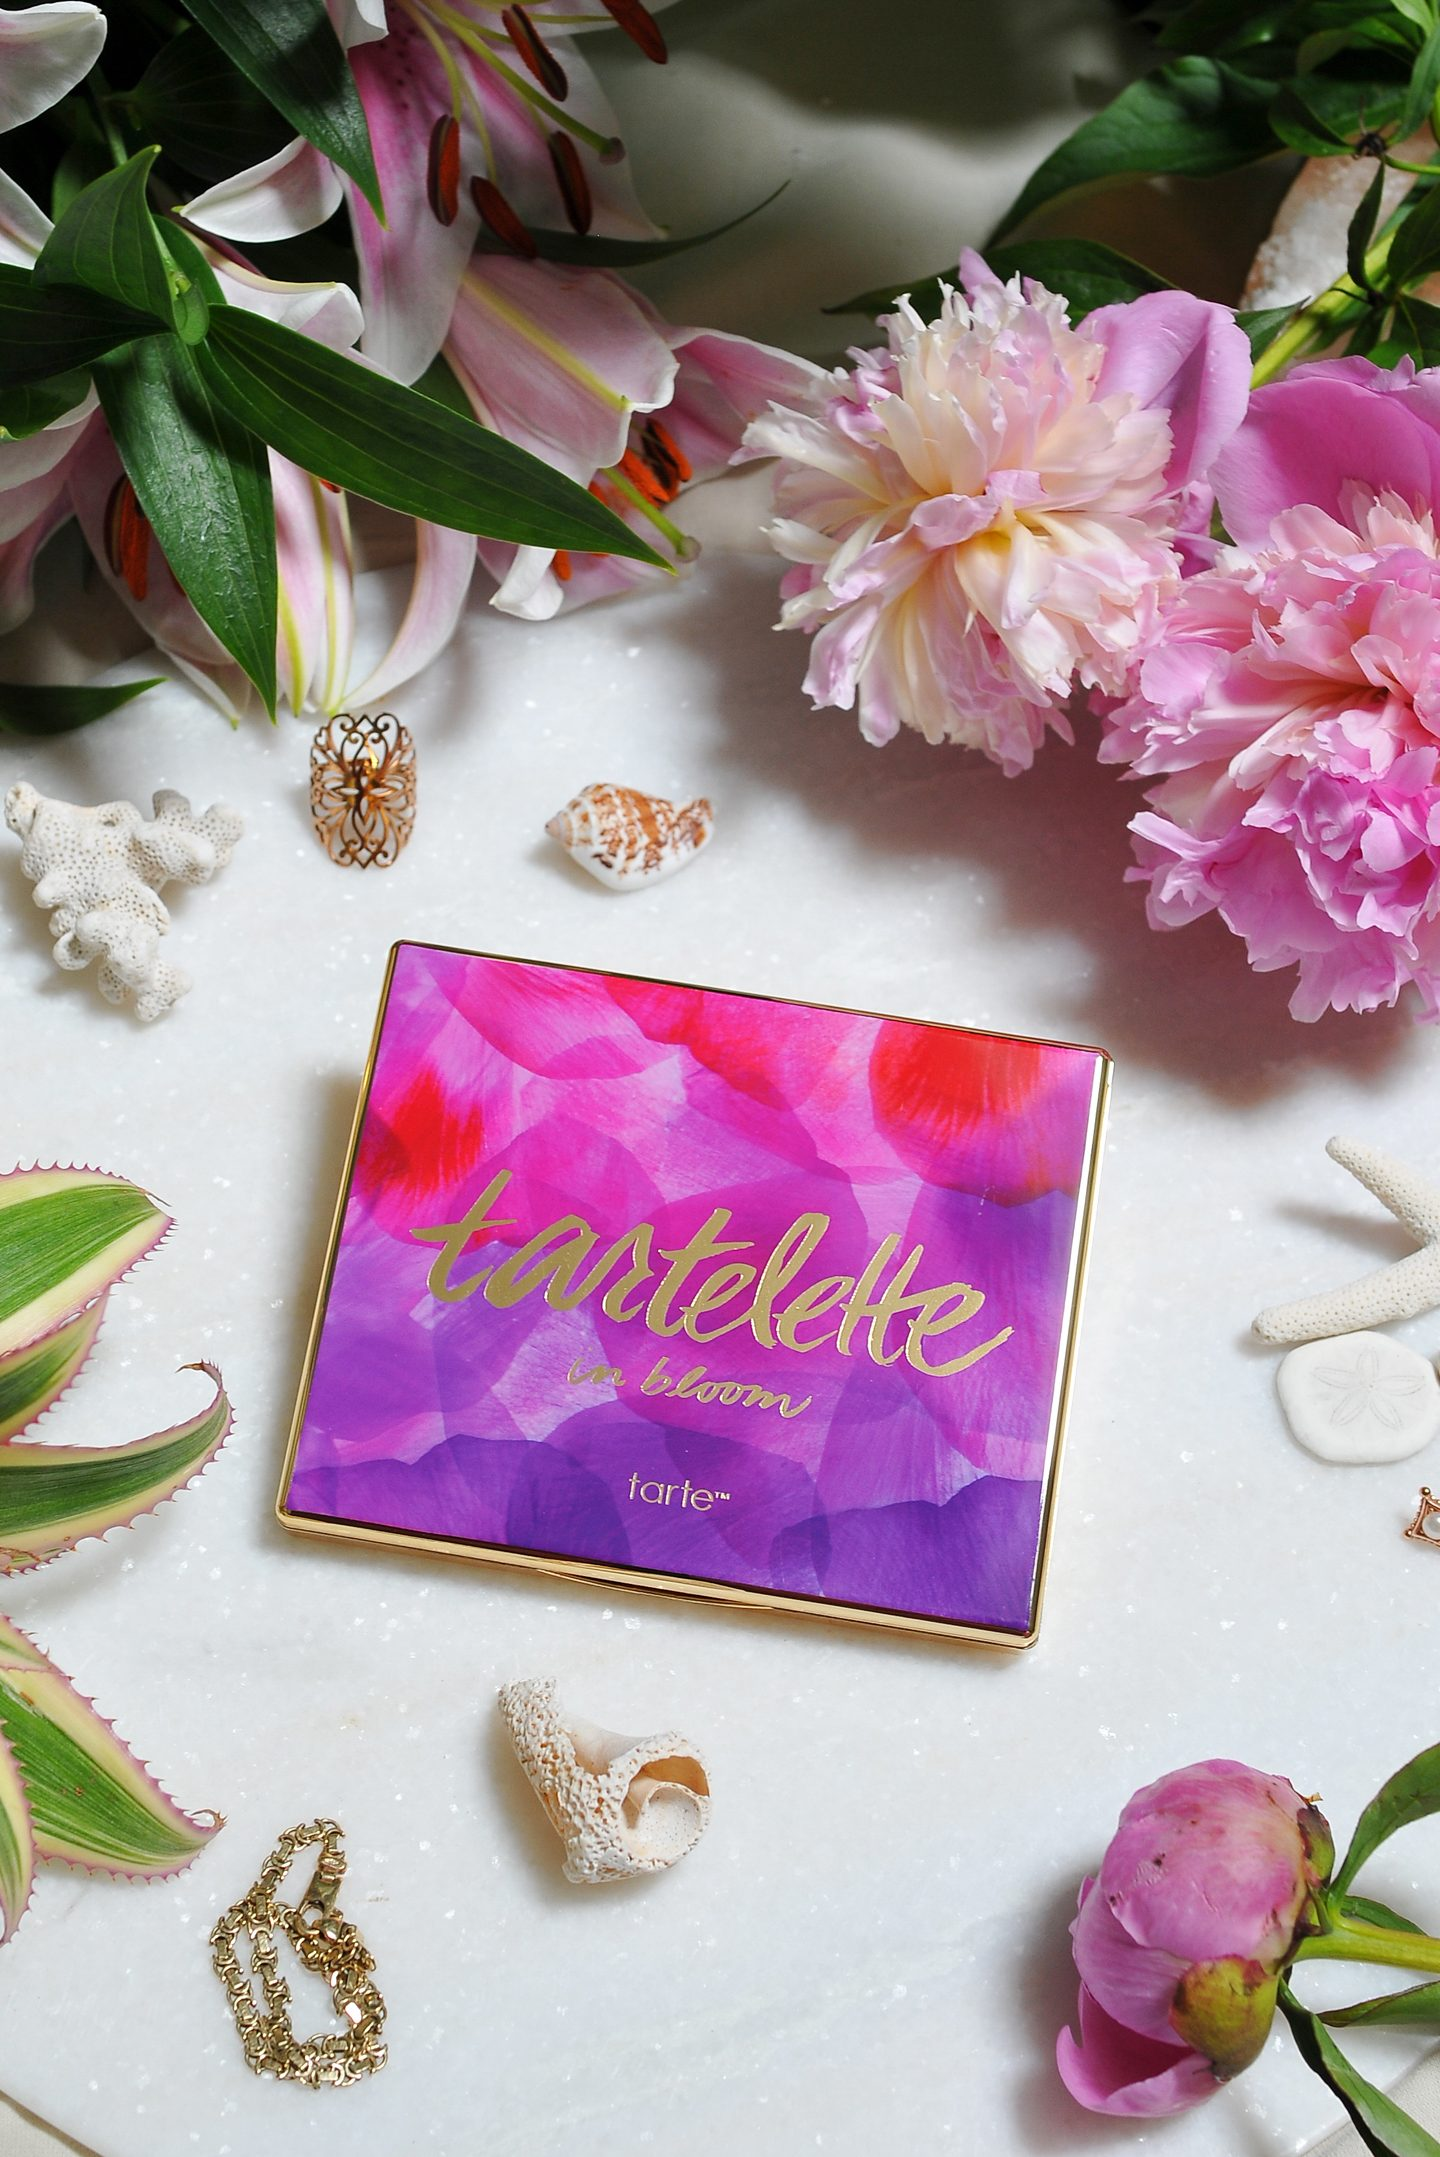 Tartelette in Bloom tarte